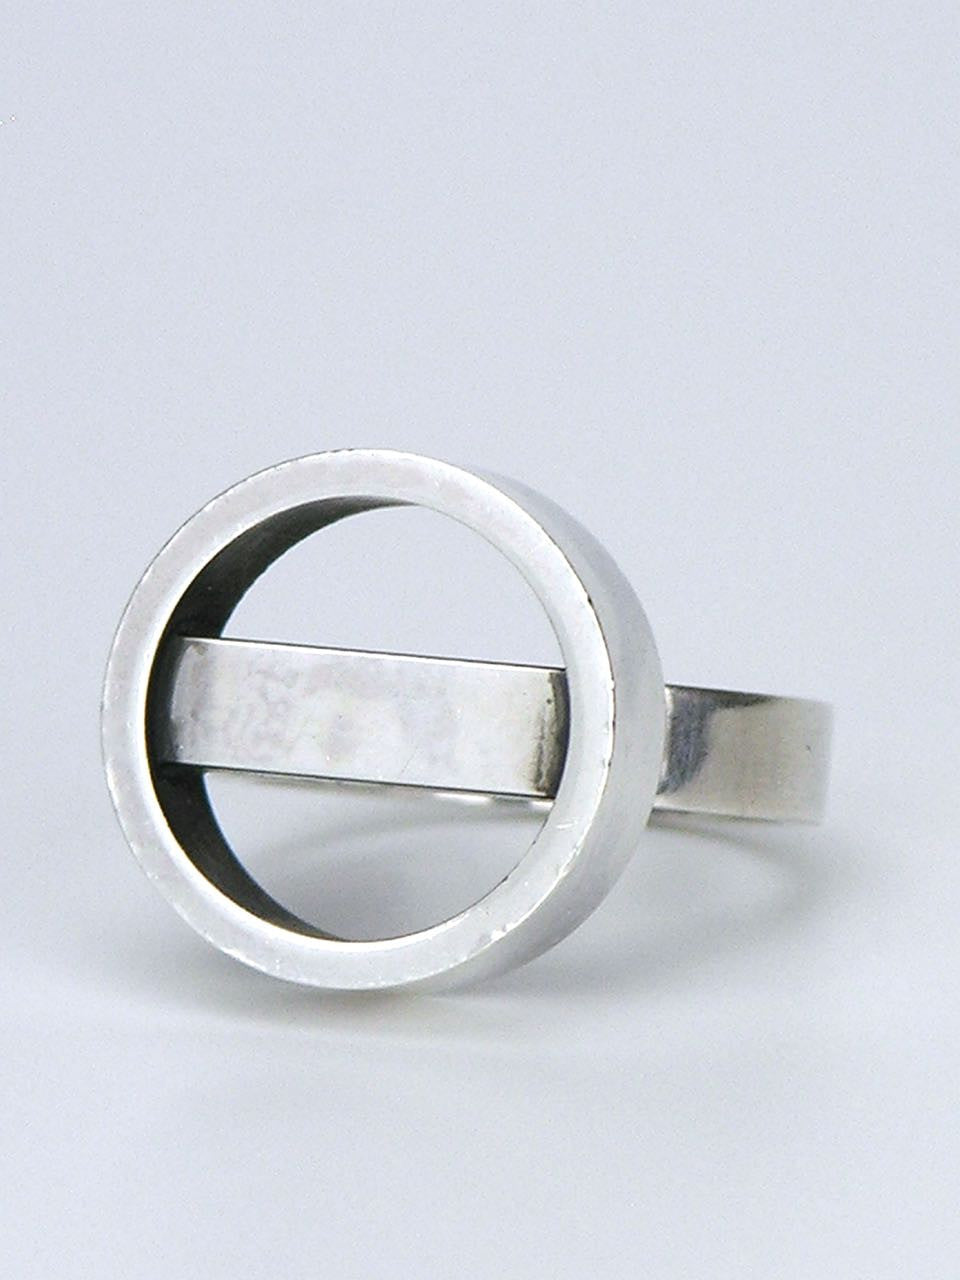 Georg Jensen silver hoop and bar ring - design 122